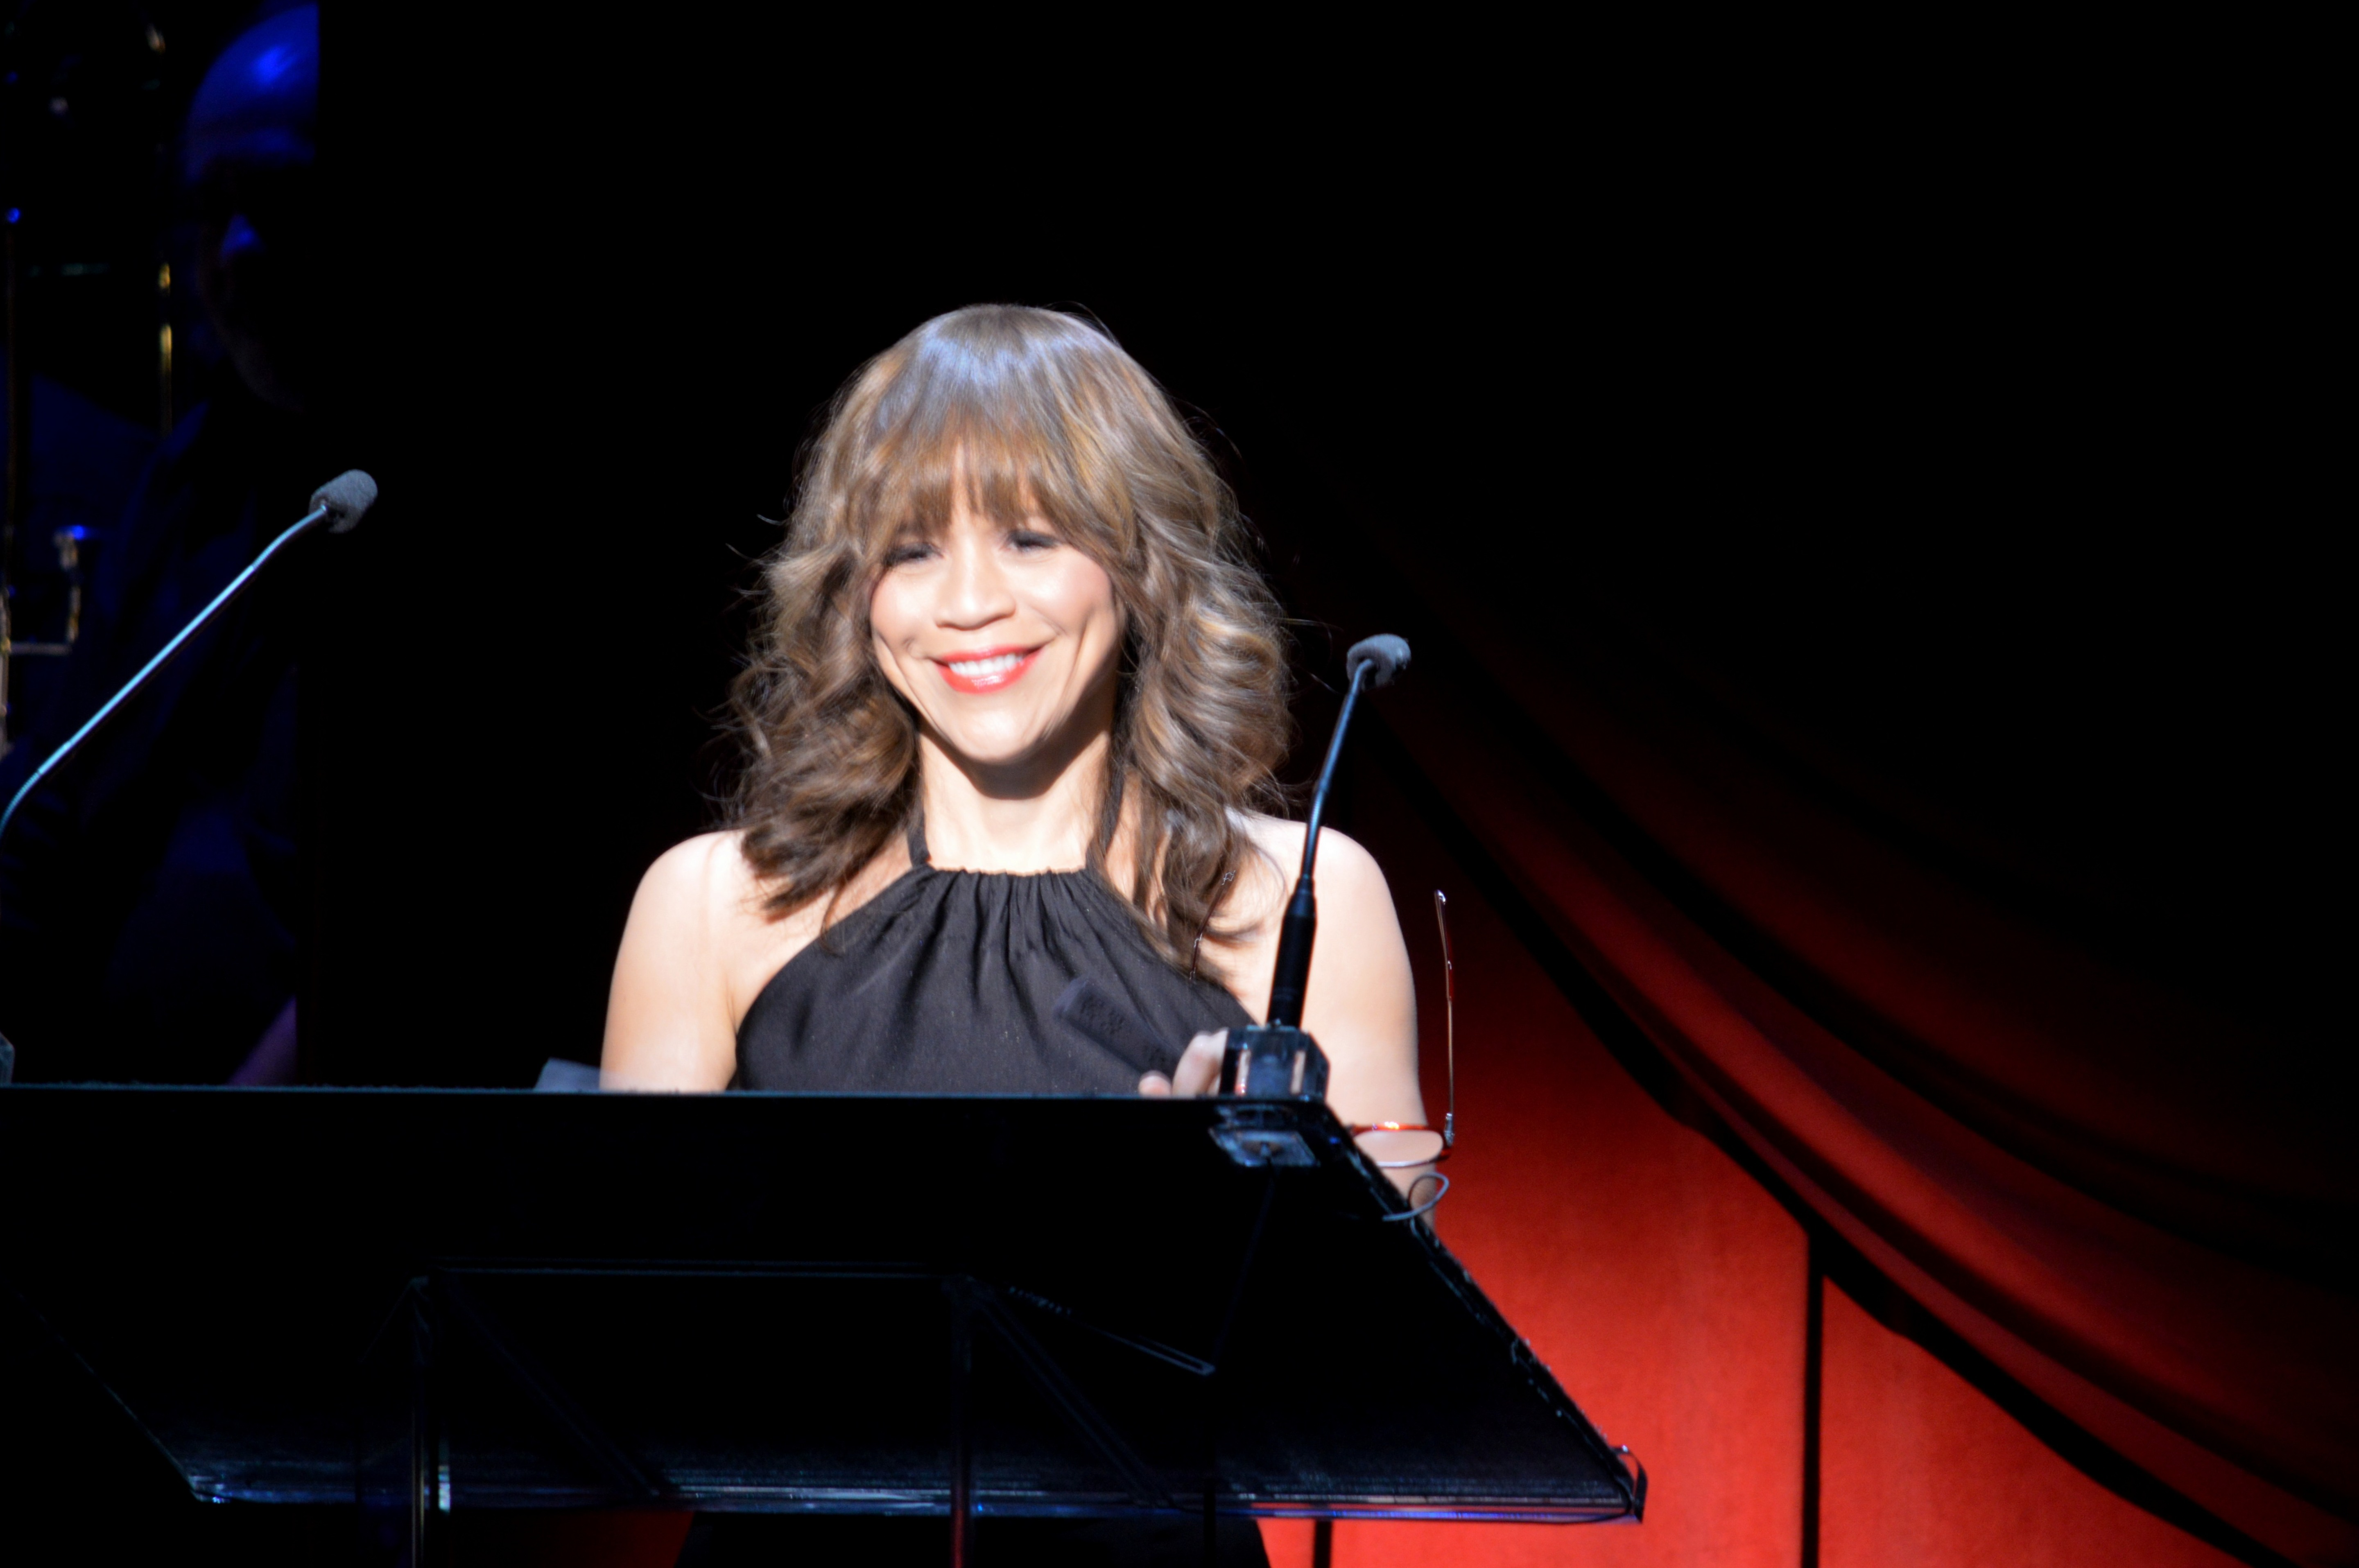 Rosie-Perez-On-Stage